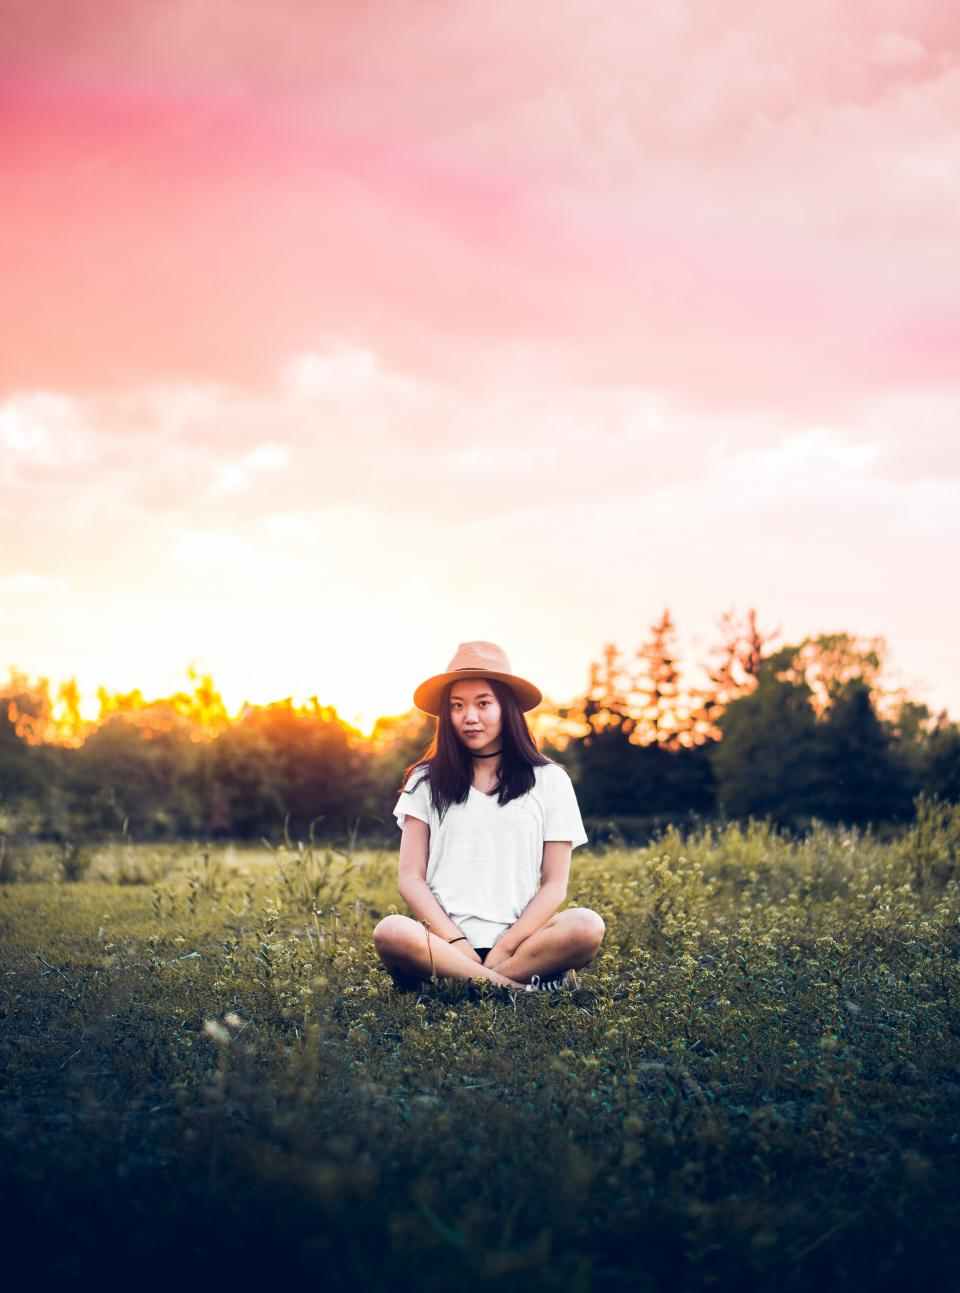 green grass grassland outdoor people girl sitting alone nature sunset sky cloud